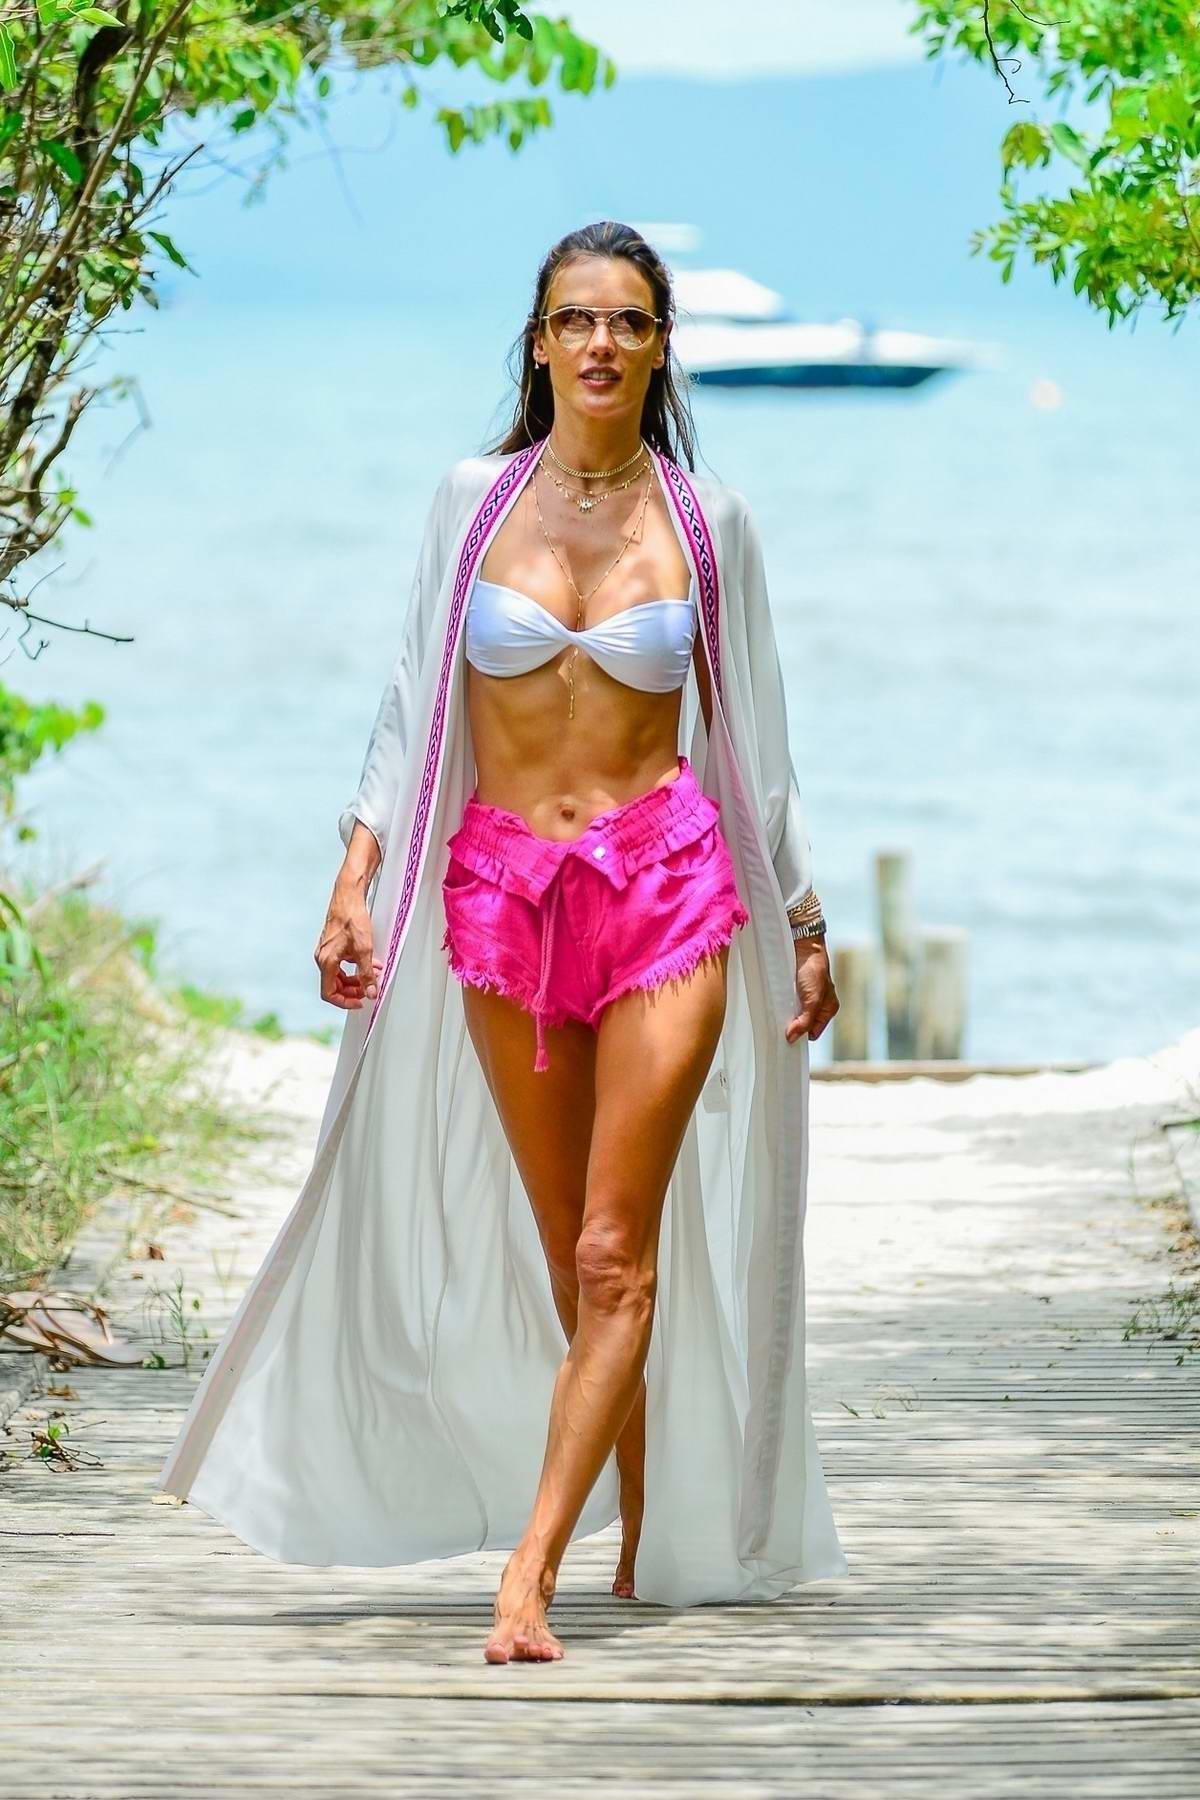 Alessandra Ambrosio flashes her midriff in bikini top and pink denim shorts as she heads for a Jet Ski ride in Florianopolis, Brazil